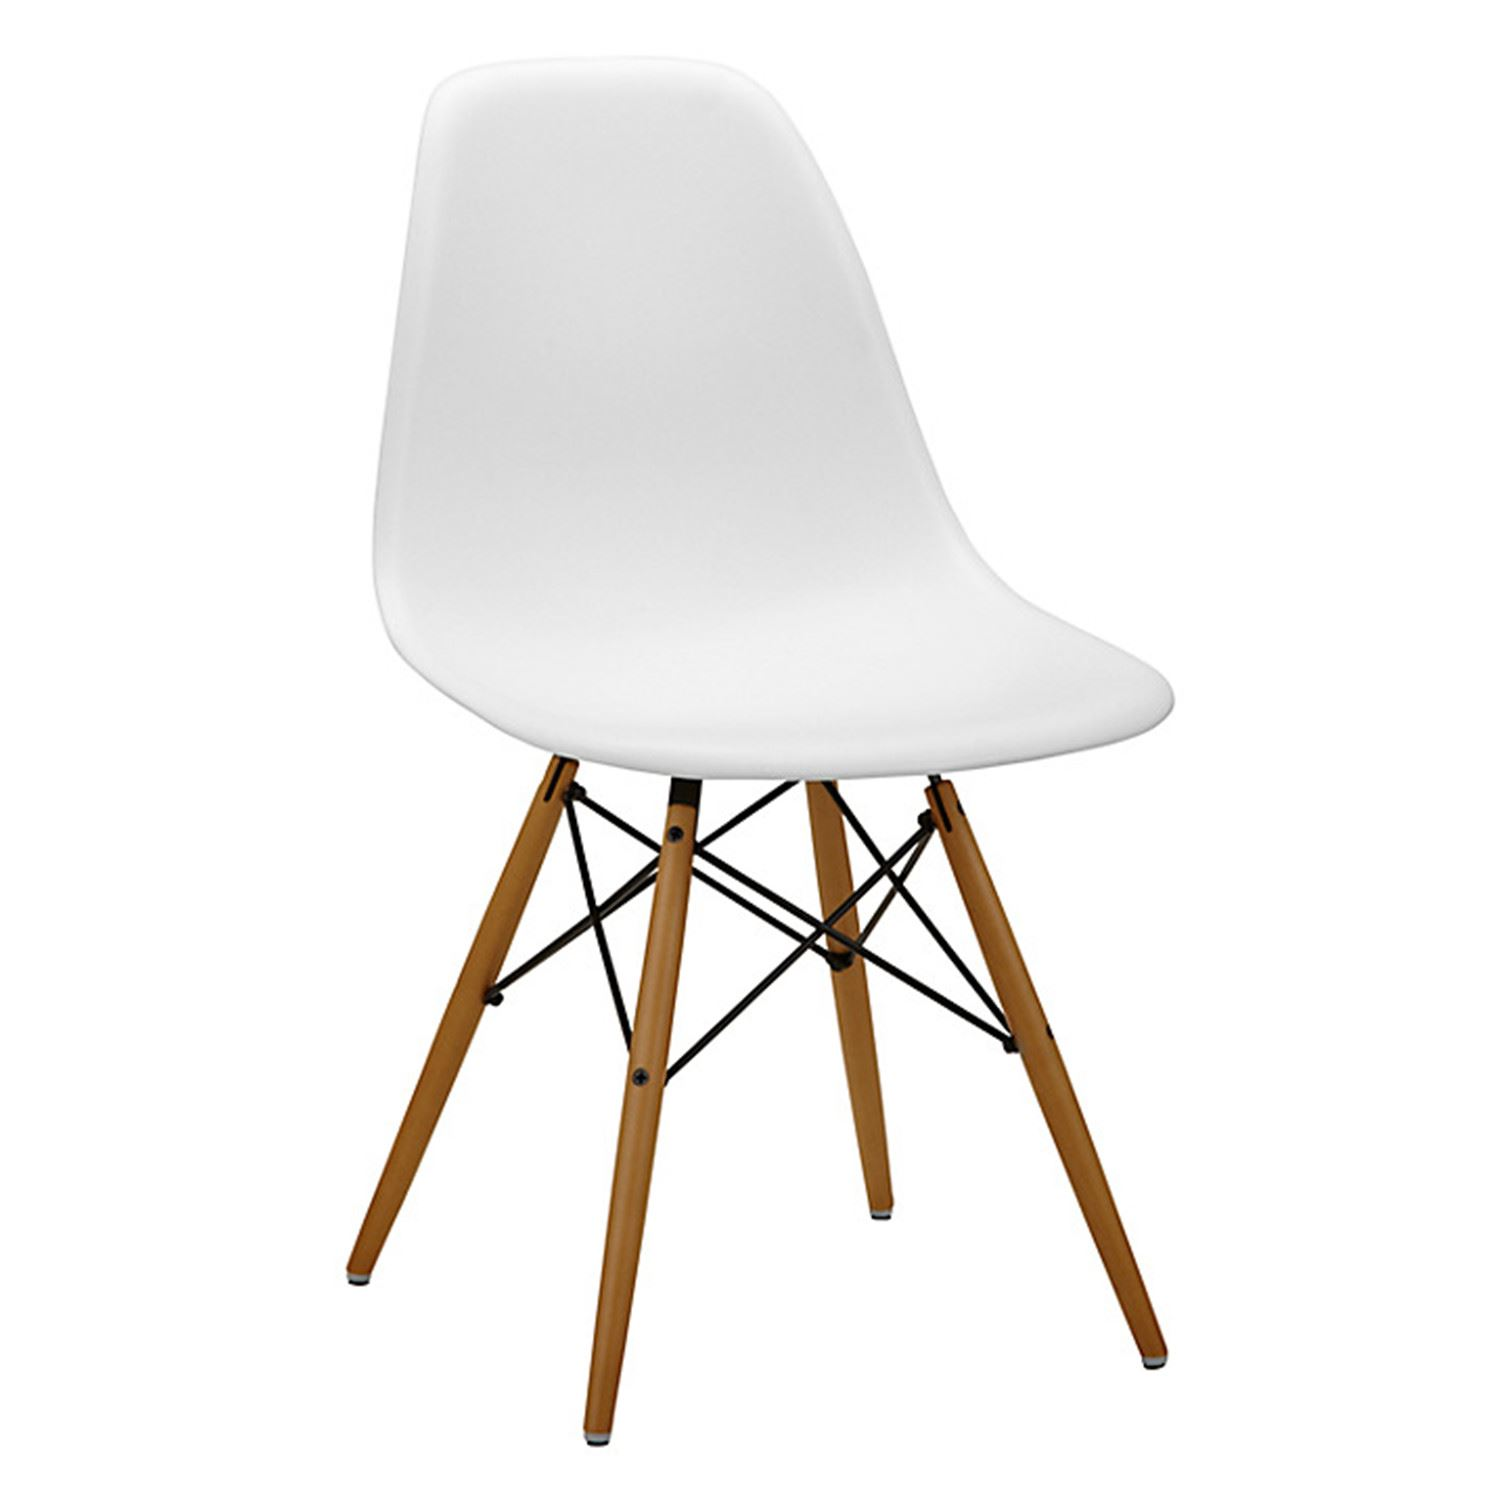 charles ray eames eiffel inspired white dsw dining chair ret